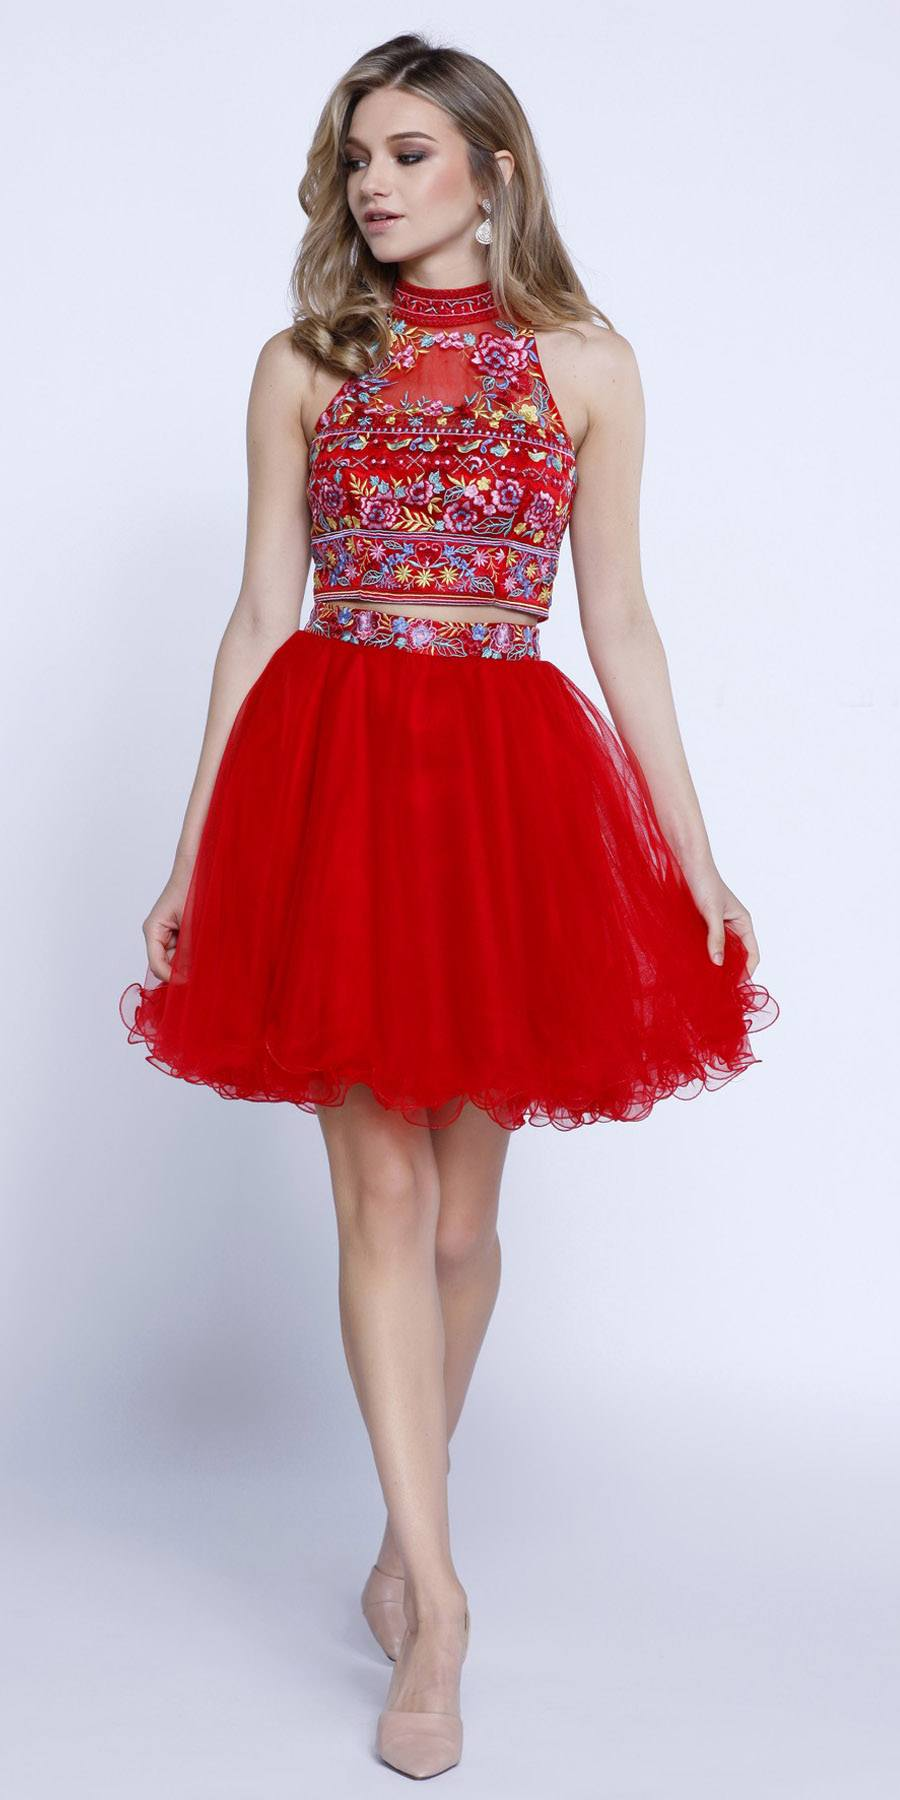 f3a2d21c454 ... Red Embroidered Crop Top Two-Piece Homecoming Dress Keyhole Back ...